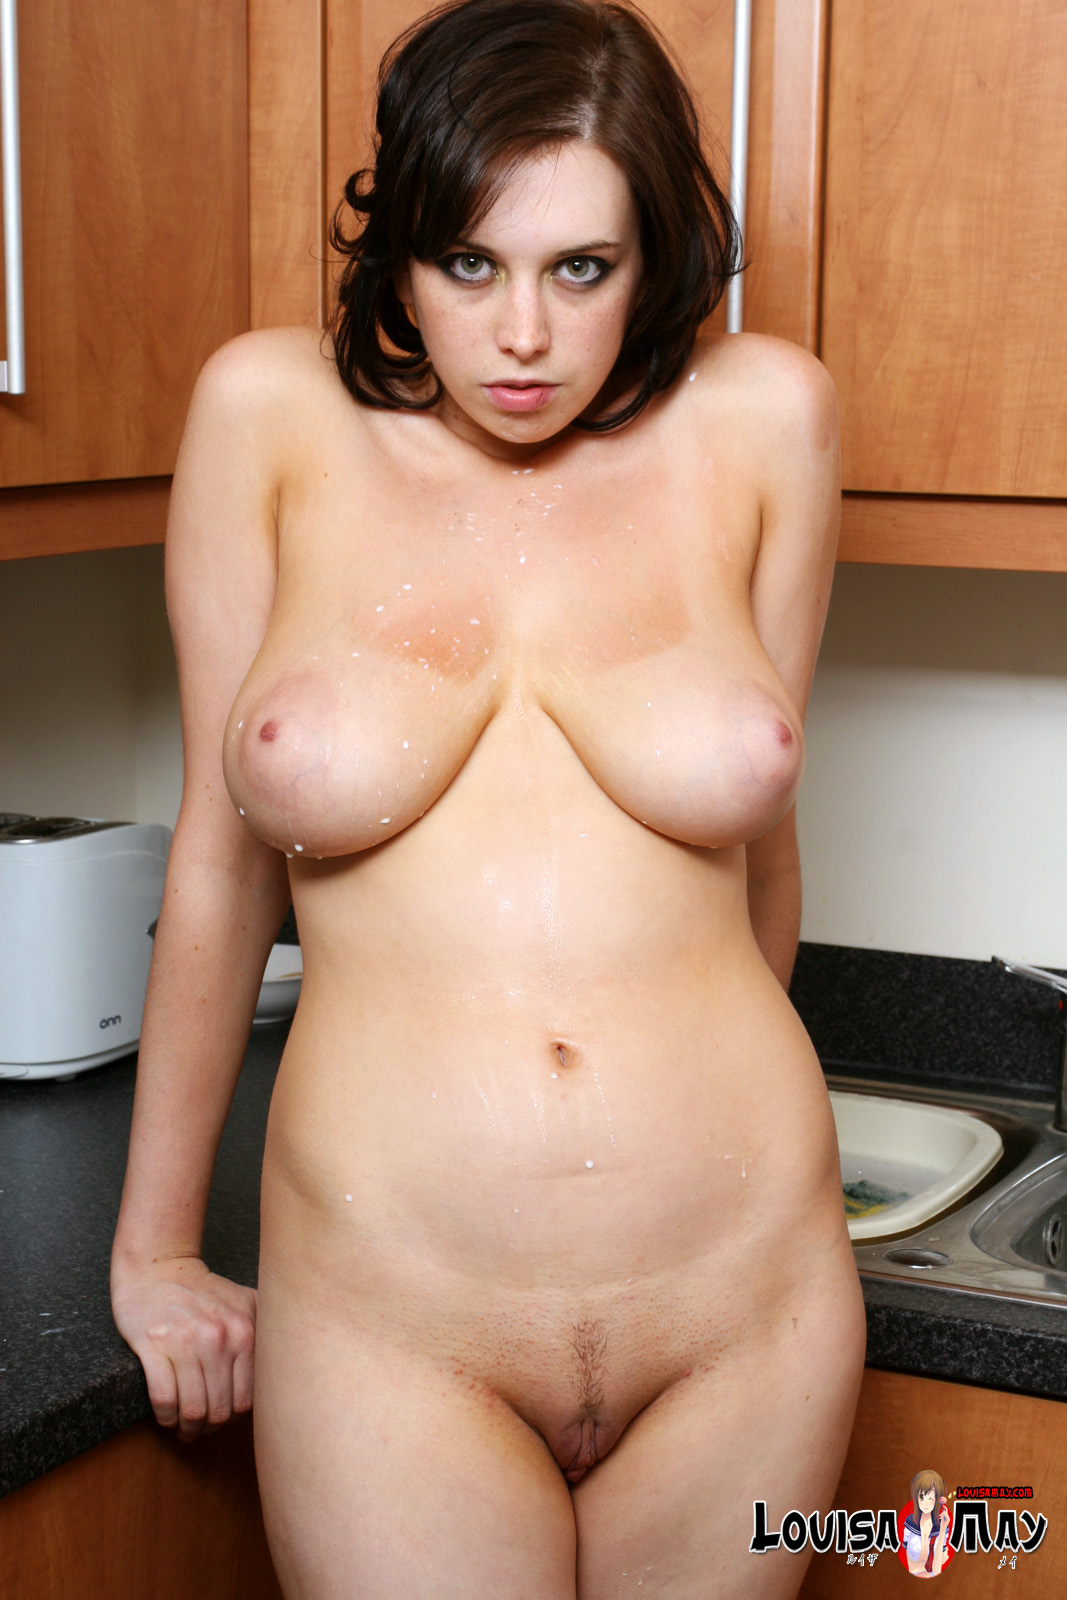 Hotty Stop / Louisa May Milk and Cookies